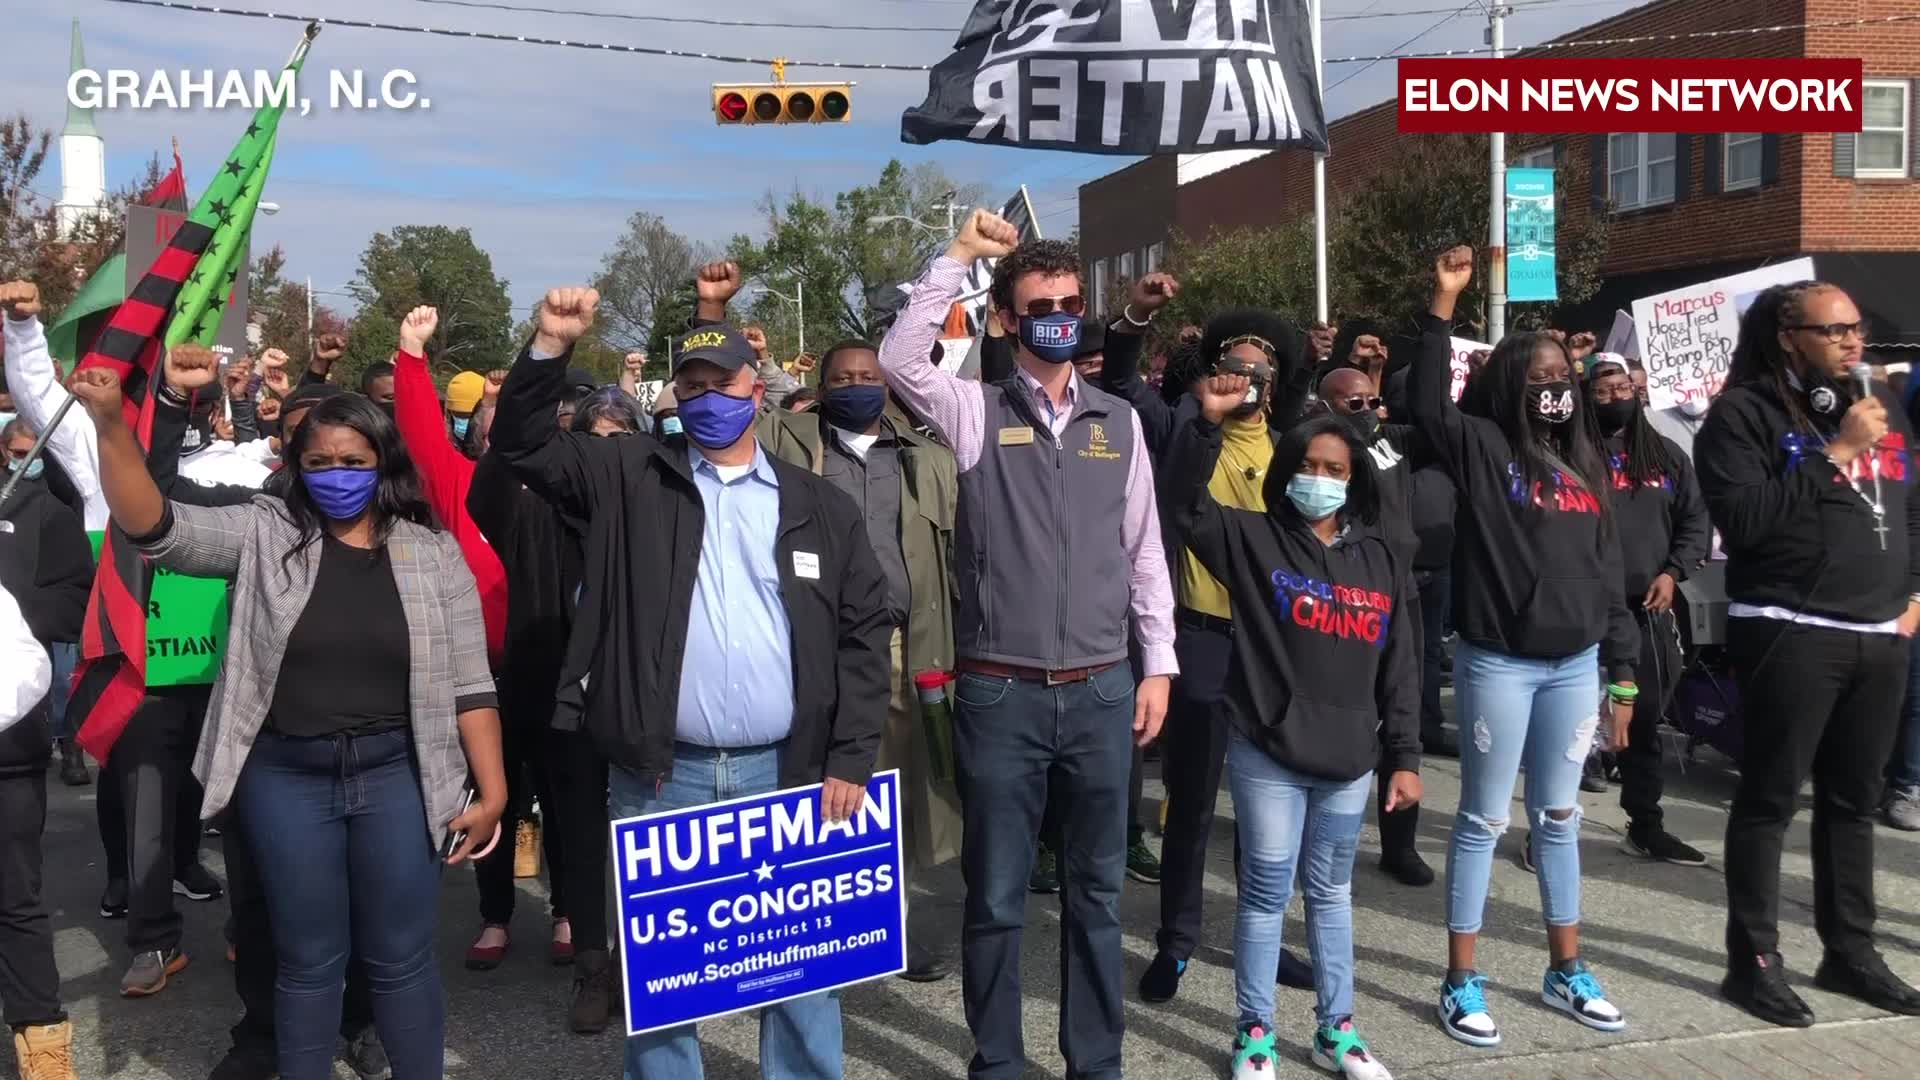 Police use pepper spray, arrest 8 marchers at Graham voting rally (credit: Elon News Network)